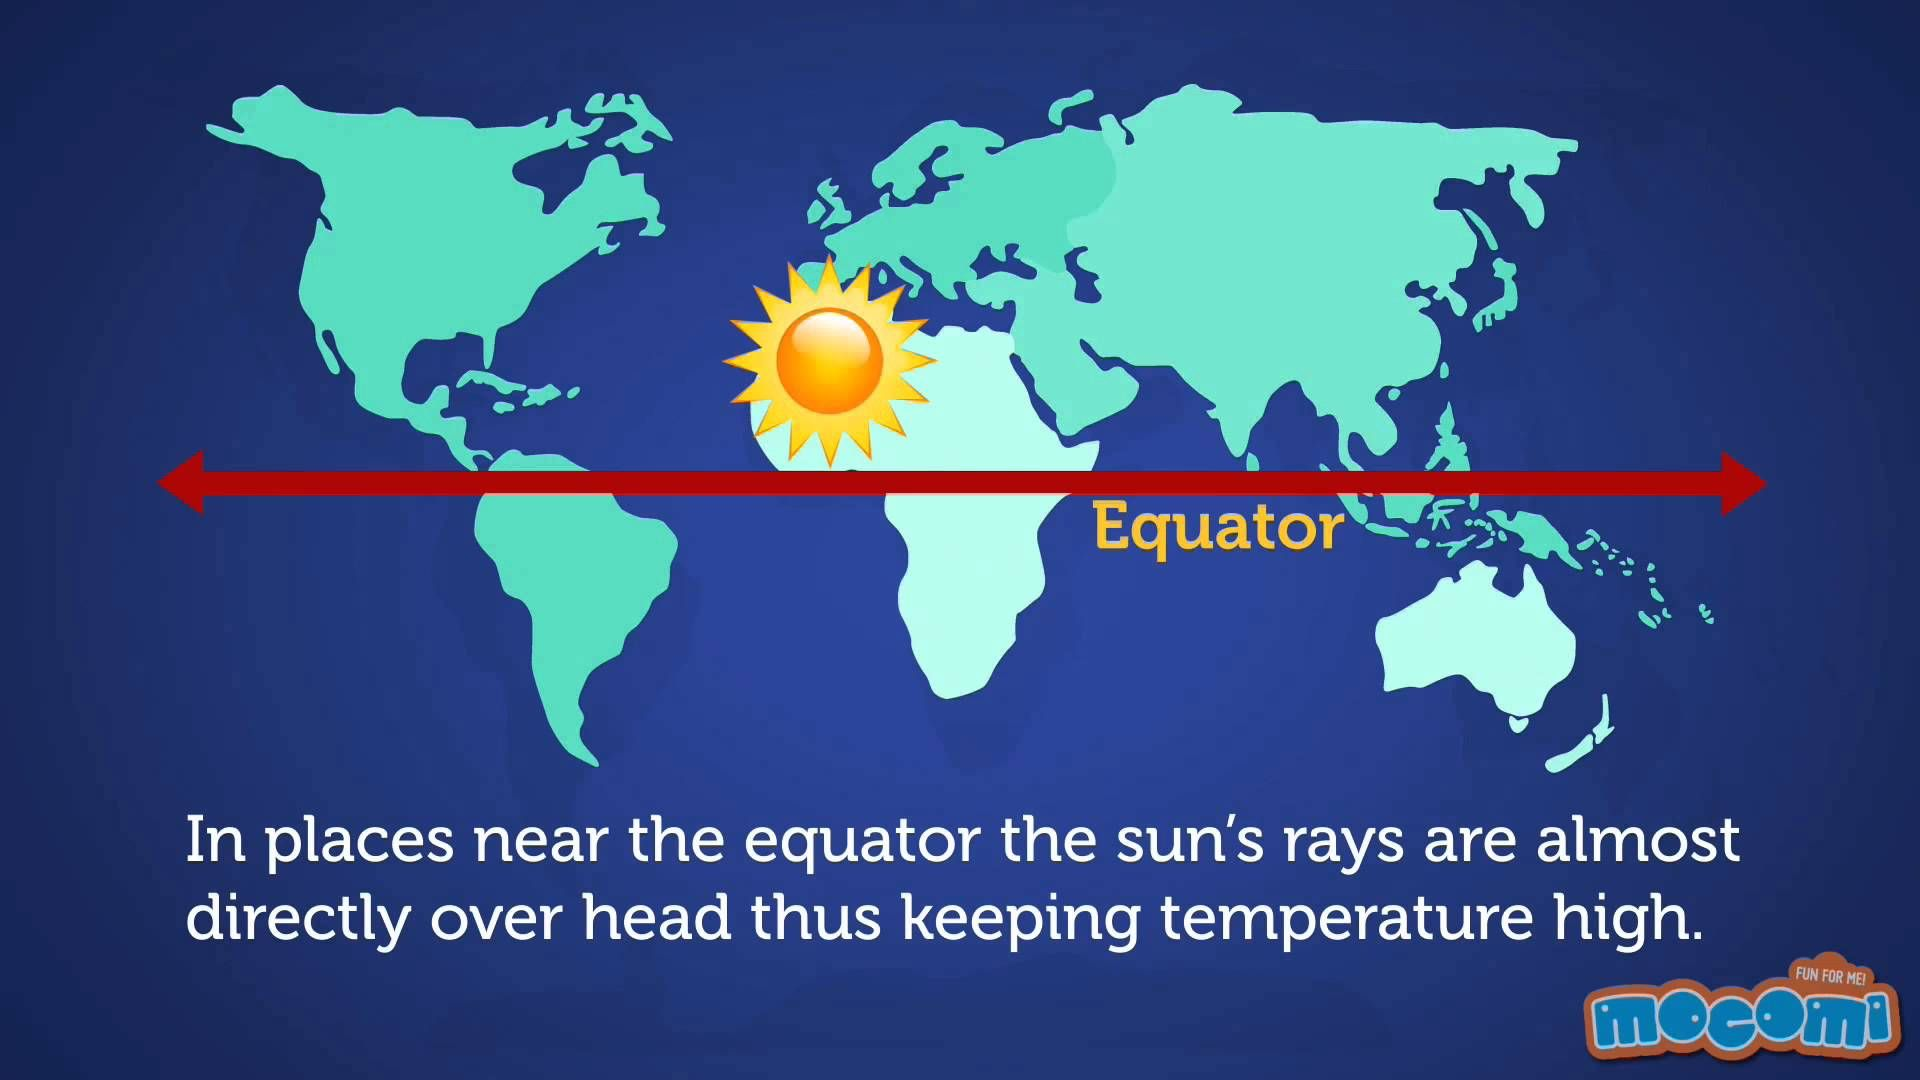 Why Is It So Hot Near The Equator